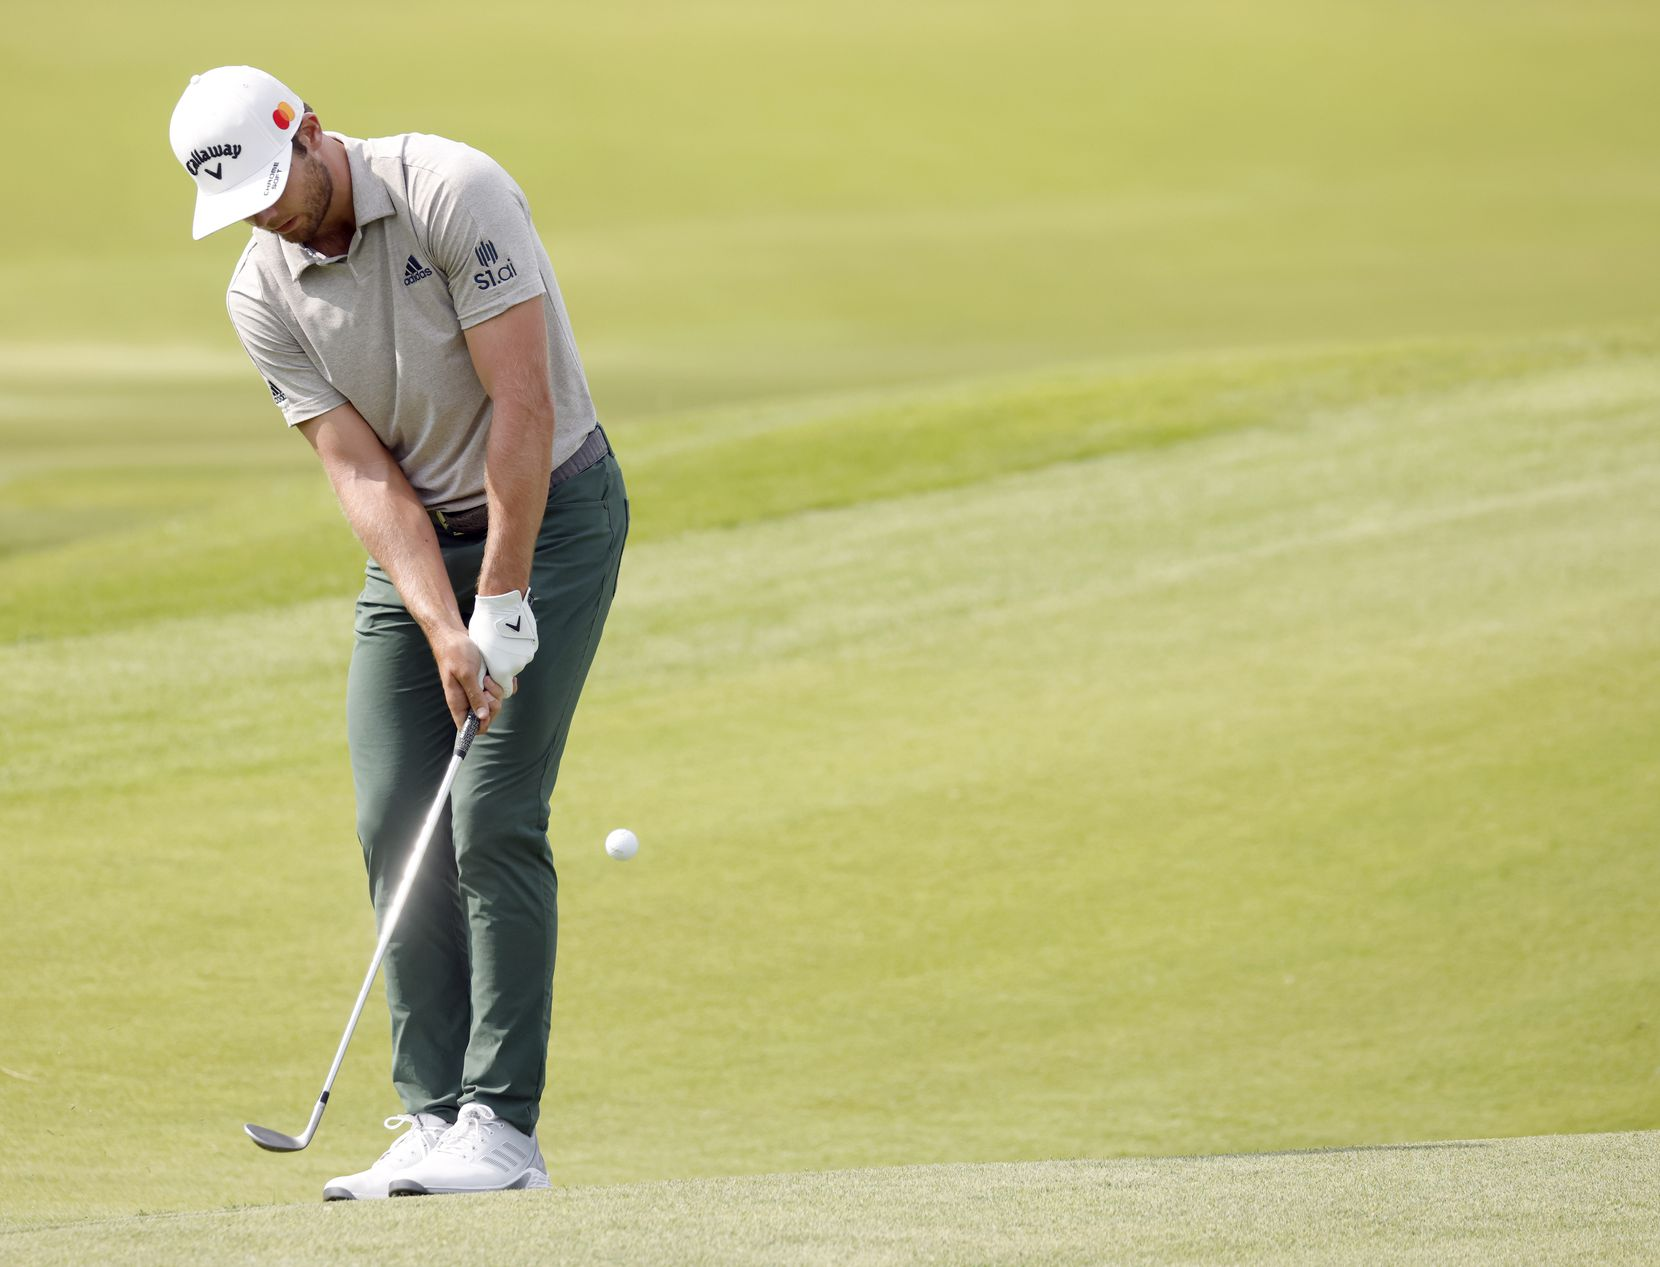 Sam Burns putts on the 16th hole during round 3 of the AT&T Byron Nelson  at TPC Craig Ranch on Saturday, May 15, 2021 in McKinney, Texas. (Vernon Bryant/The Dallas Morning News)